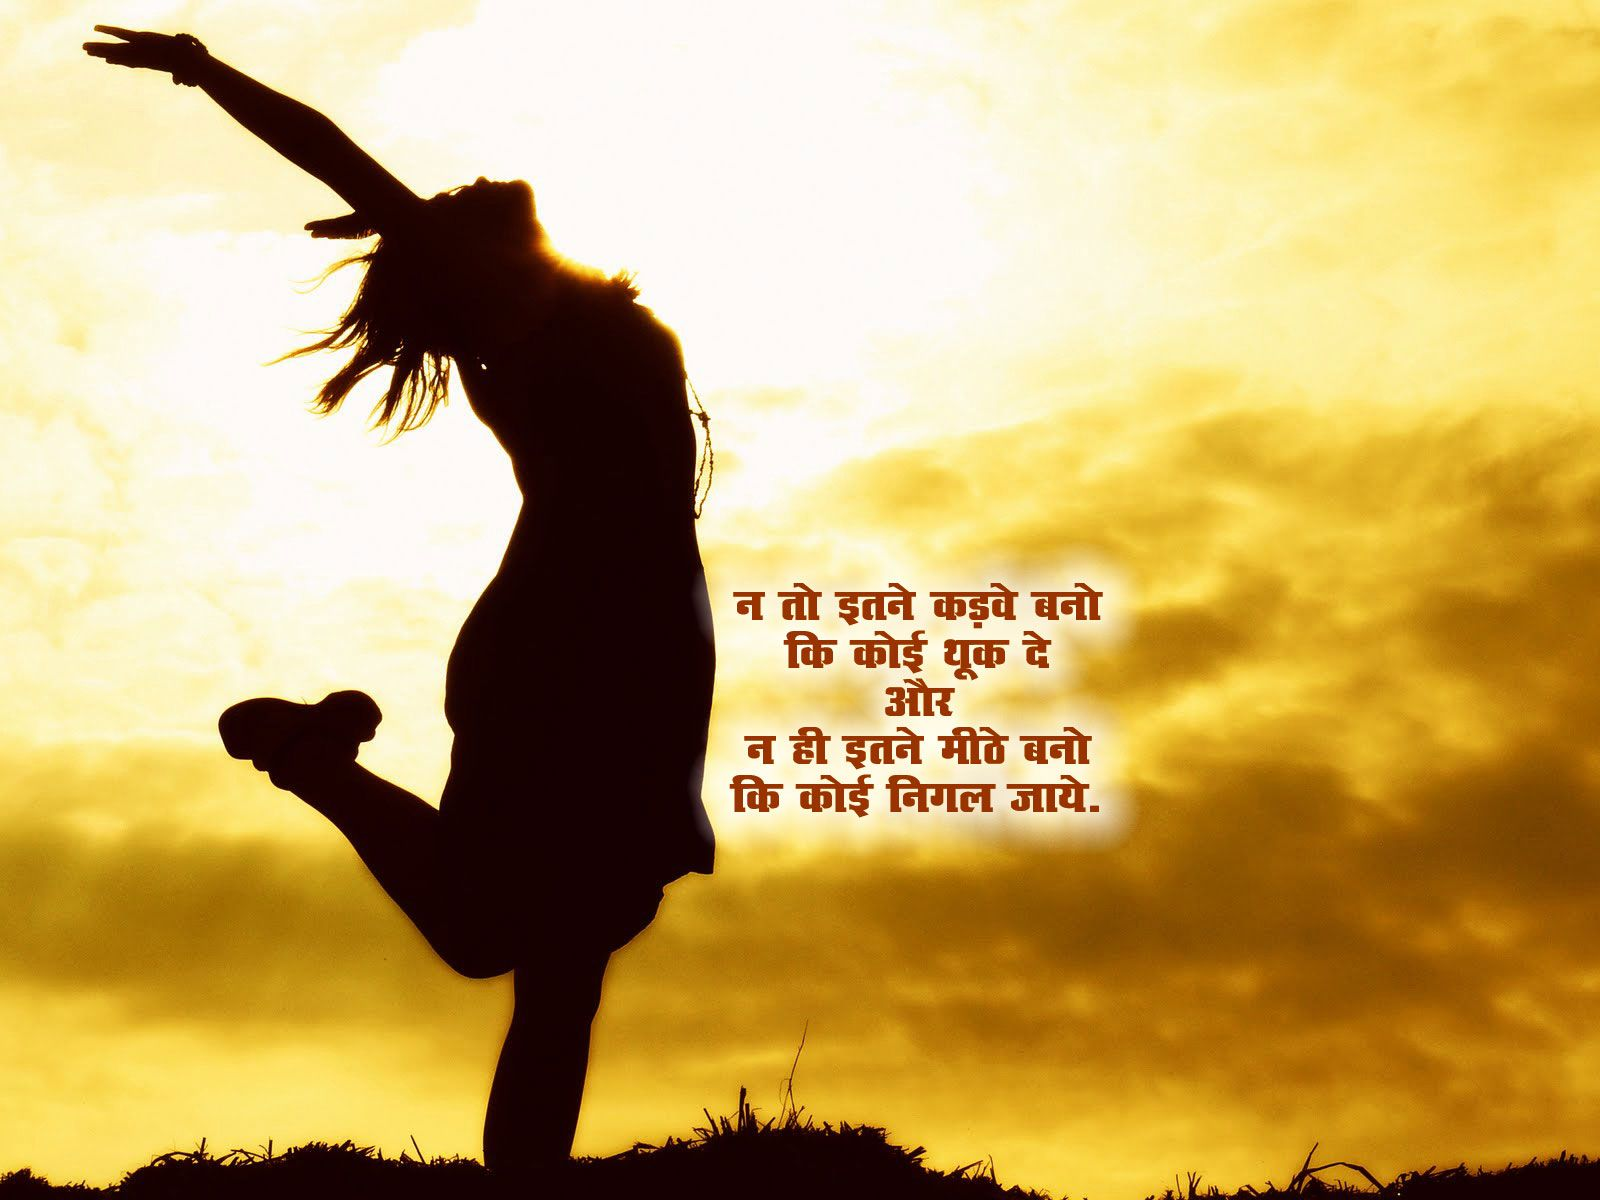 Inspirational quotes wallpapers in hindi hindi quotes for Refreshing pictures